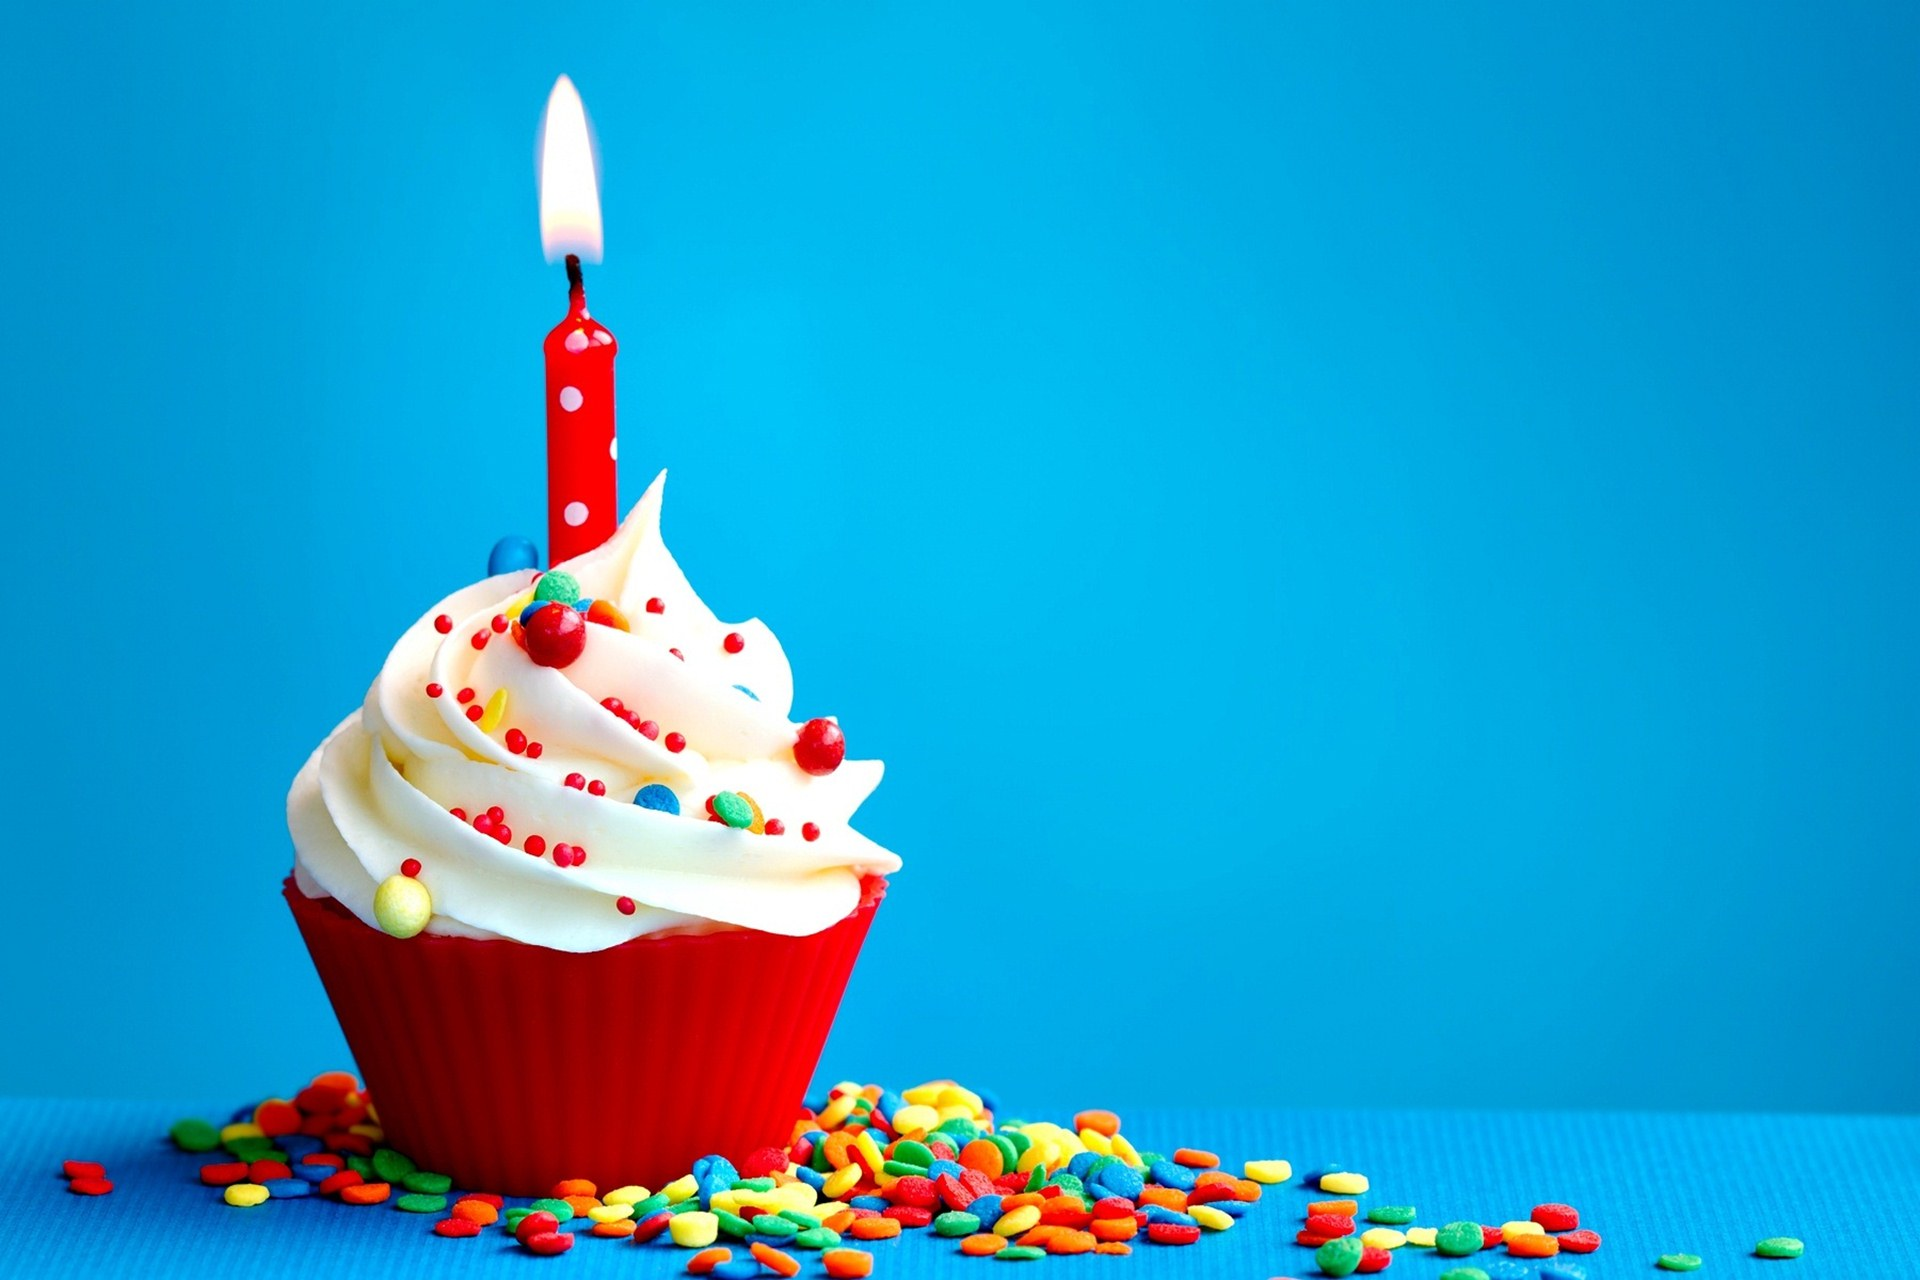 File Name 827175 Happy Birthday Wallpaper for PC Full HD Pictures 1920x1280